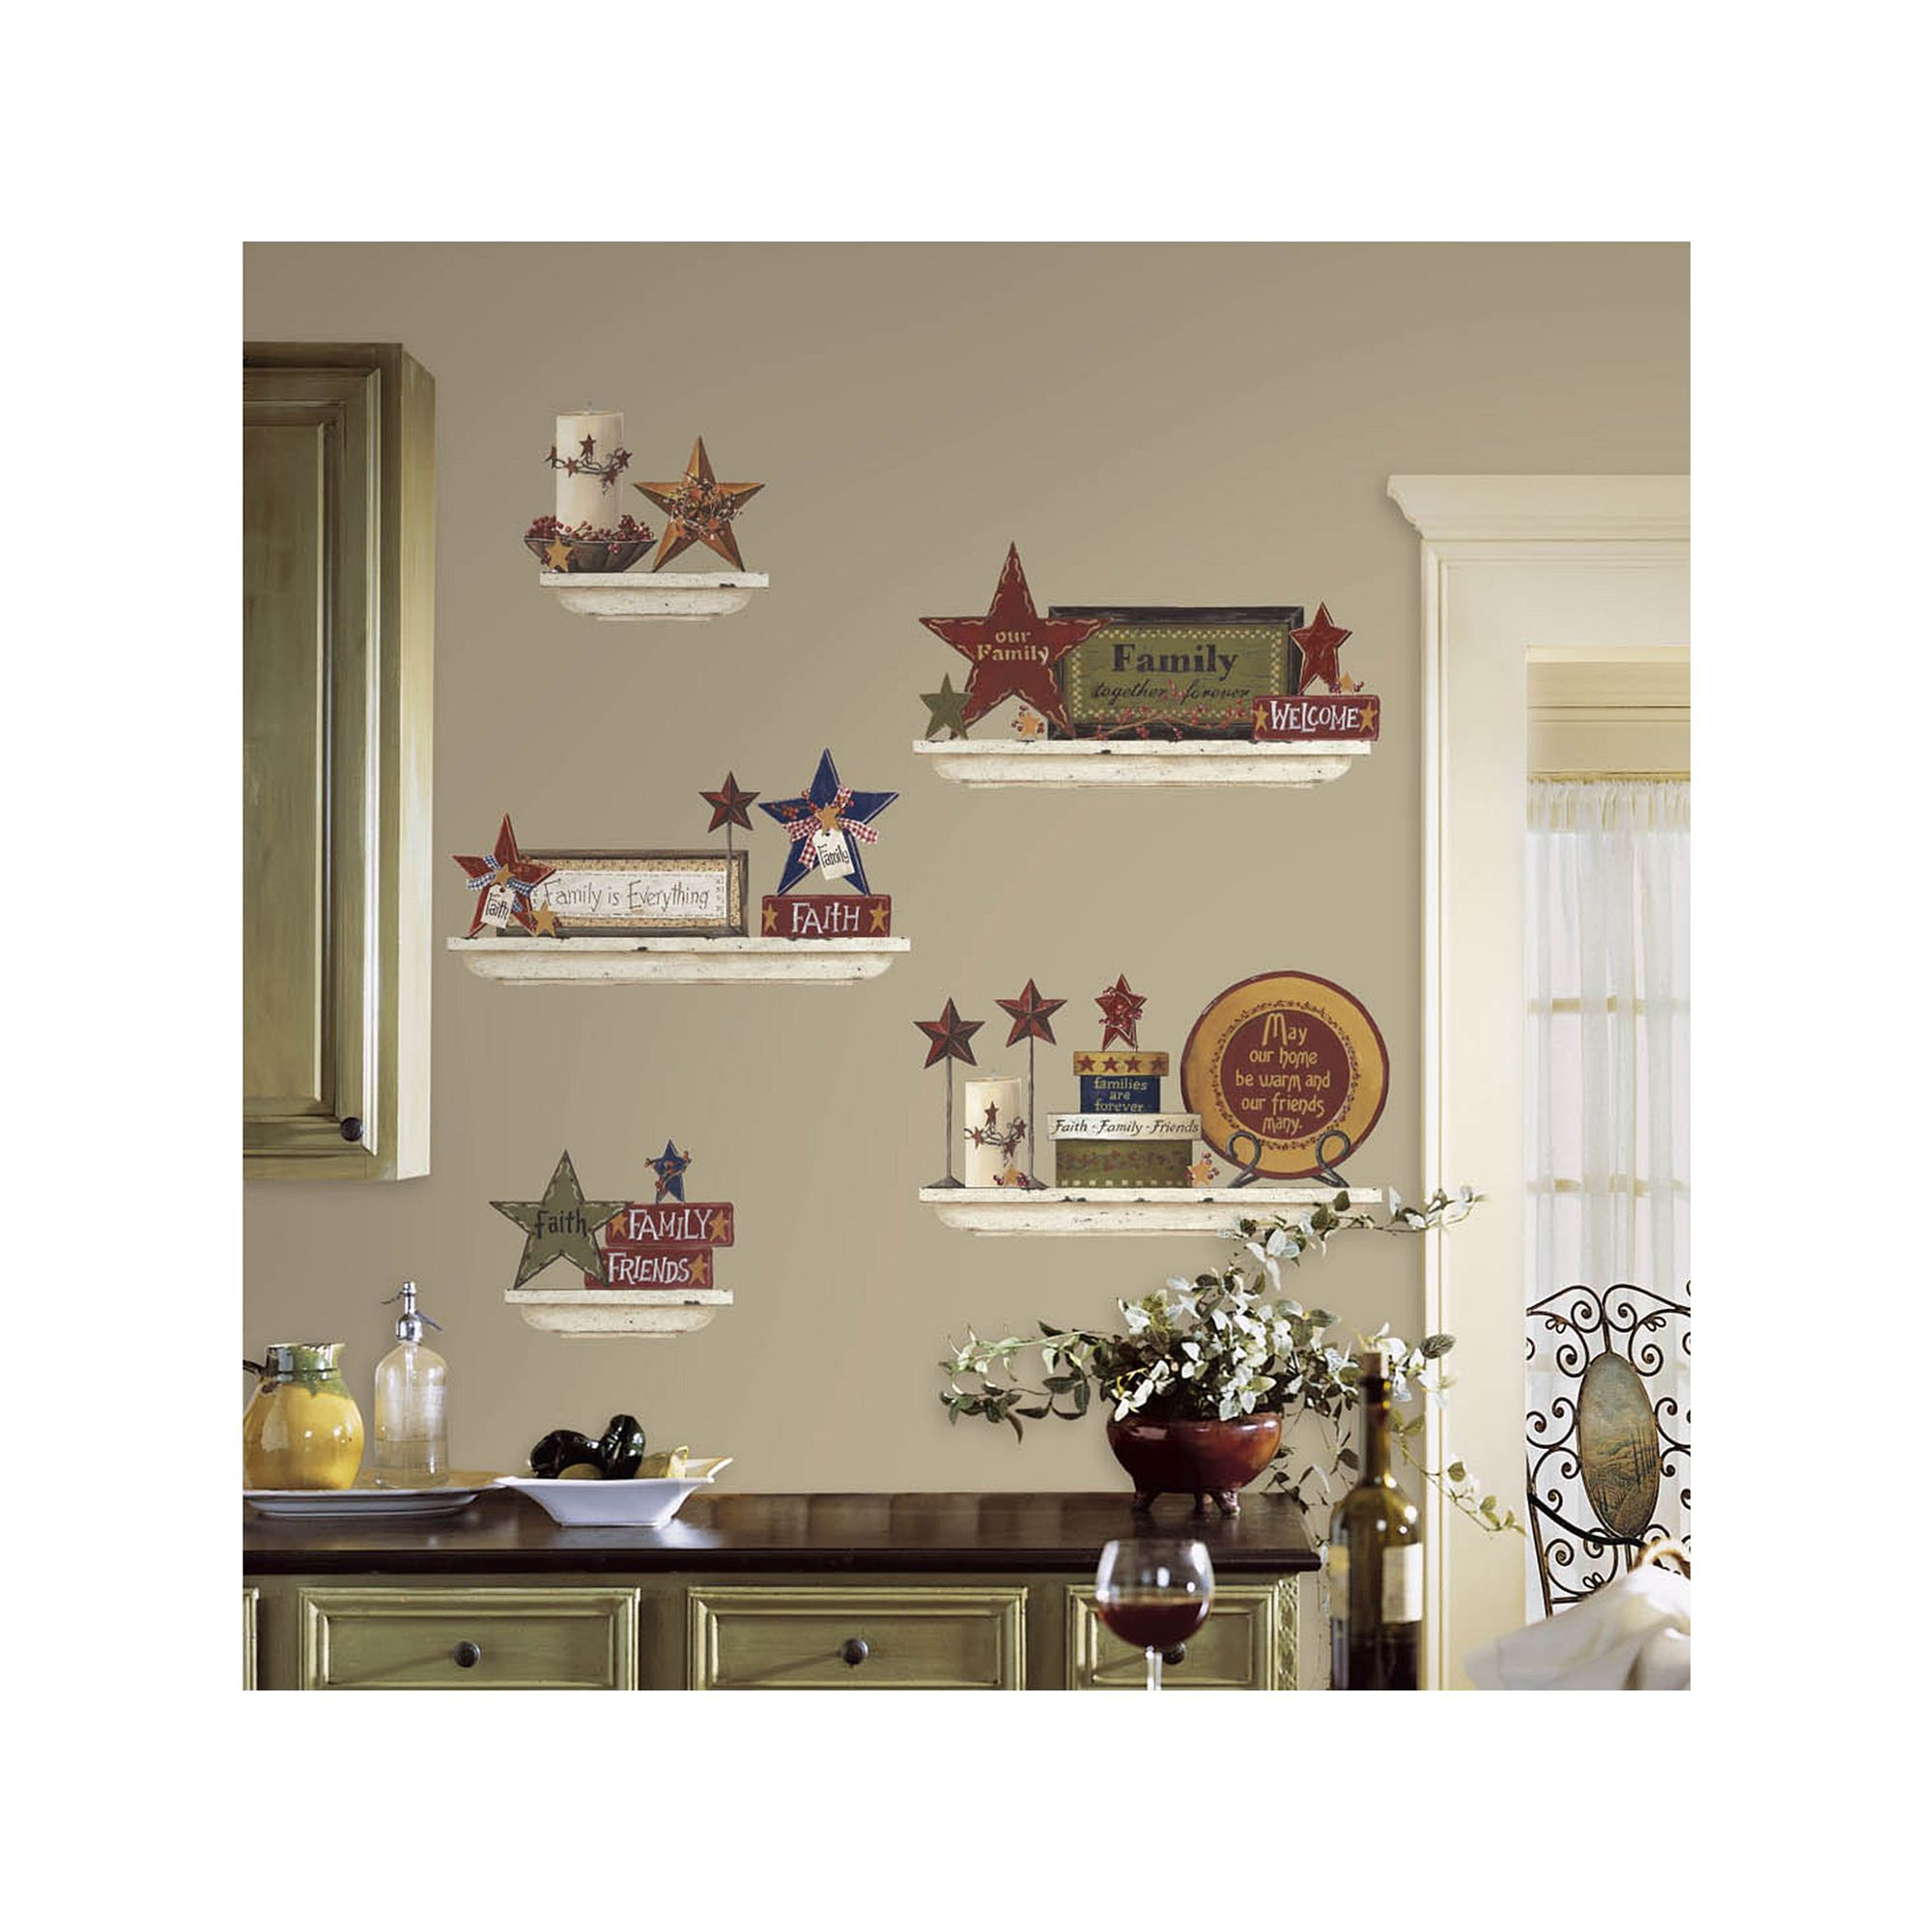 Roommates Family Friends Peel Stick Wall Decals Entryway